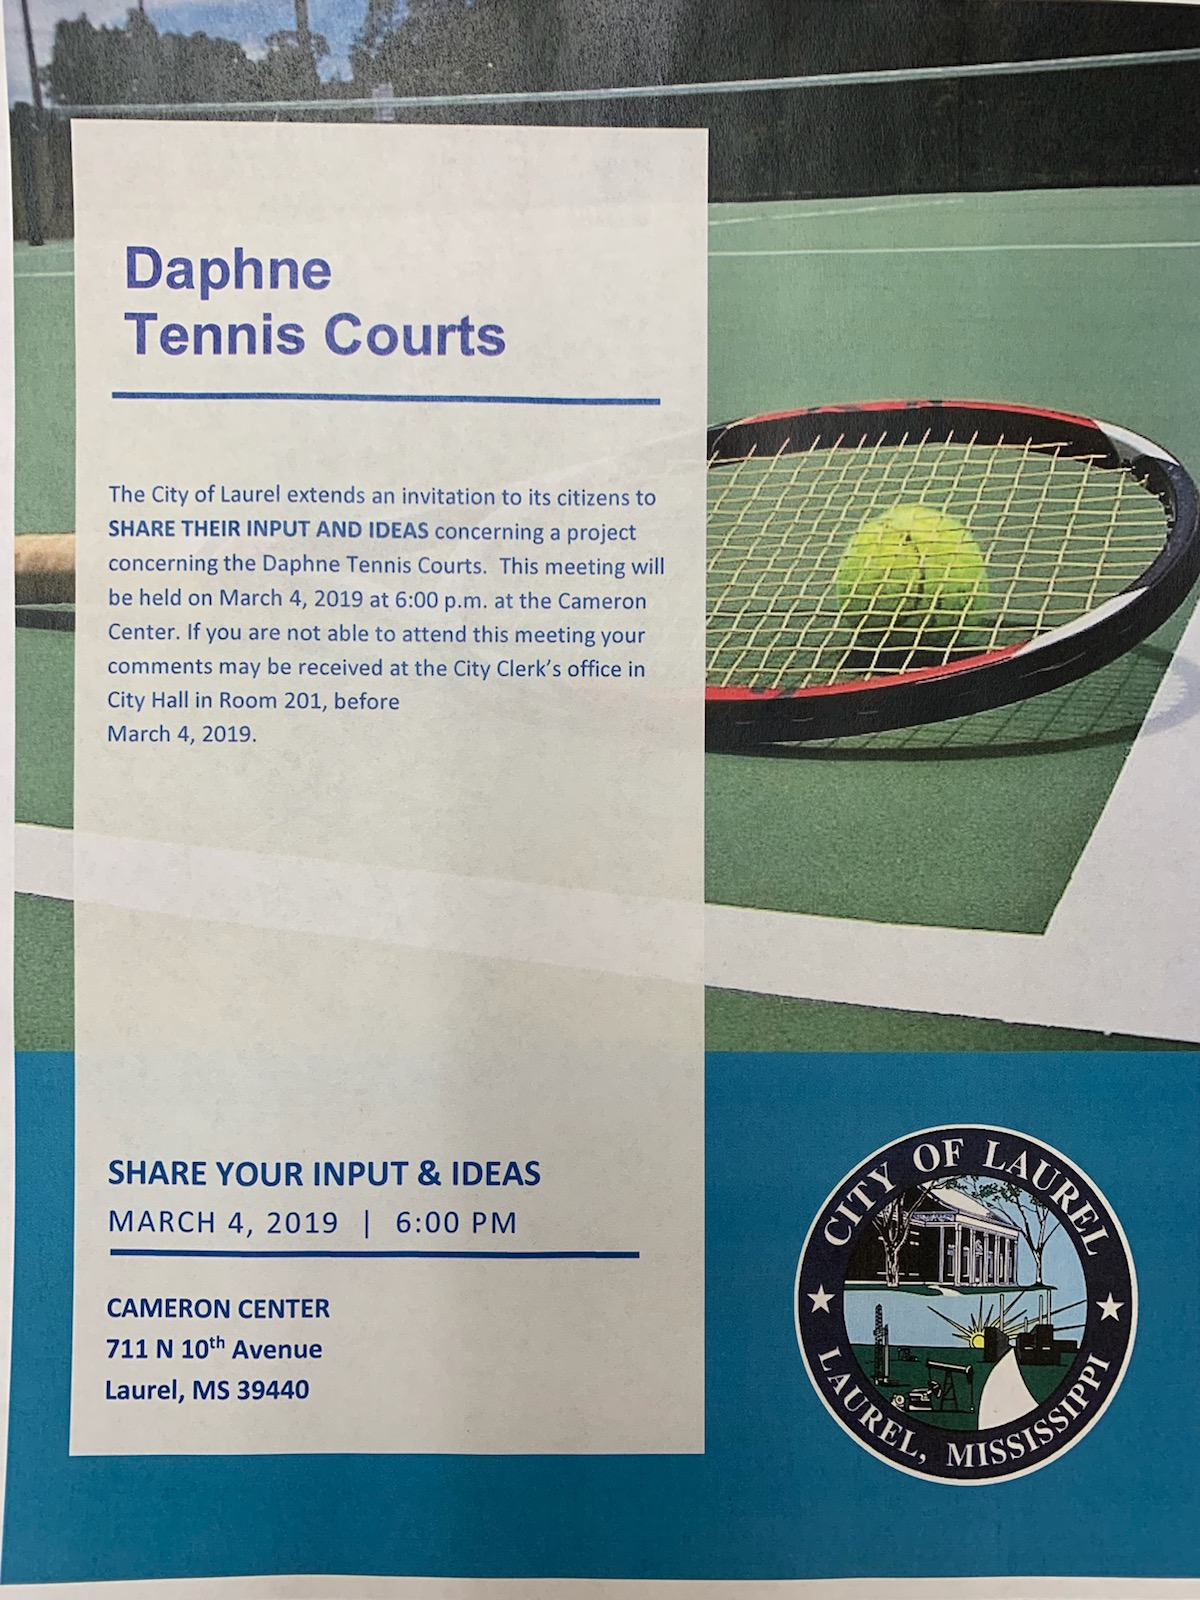 The City of Laurel, Daphne Park Tennis Courts